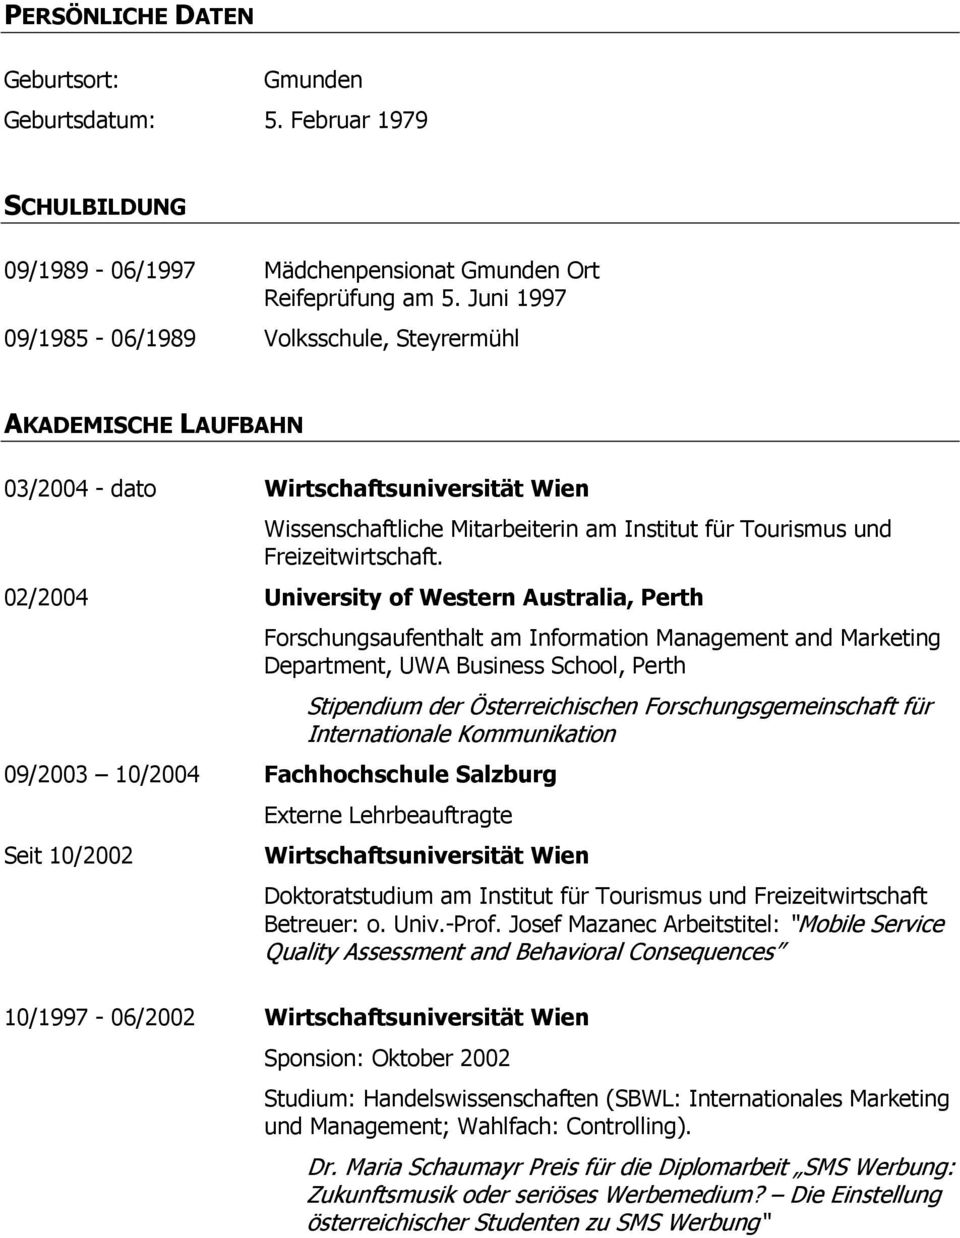 02/2004 University of Western Australia, Perth Forschungsaufenthalt am Information Management and Marketing Department, UWA Business School, Perth Stipendium der Österreichischen